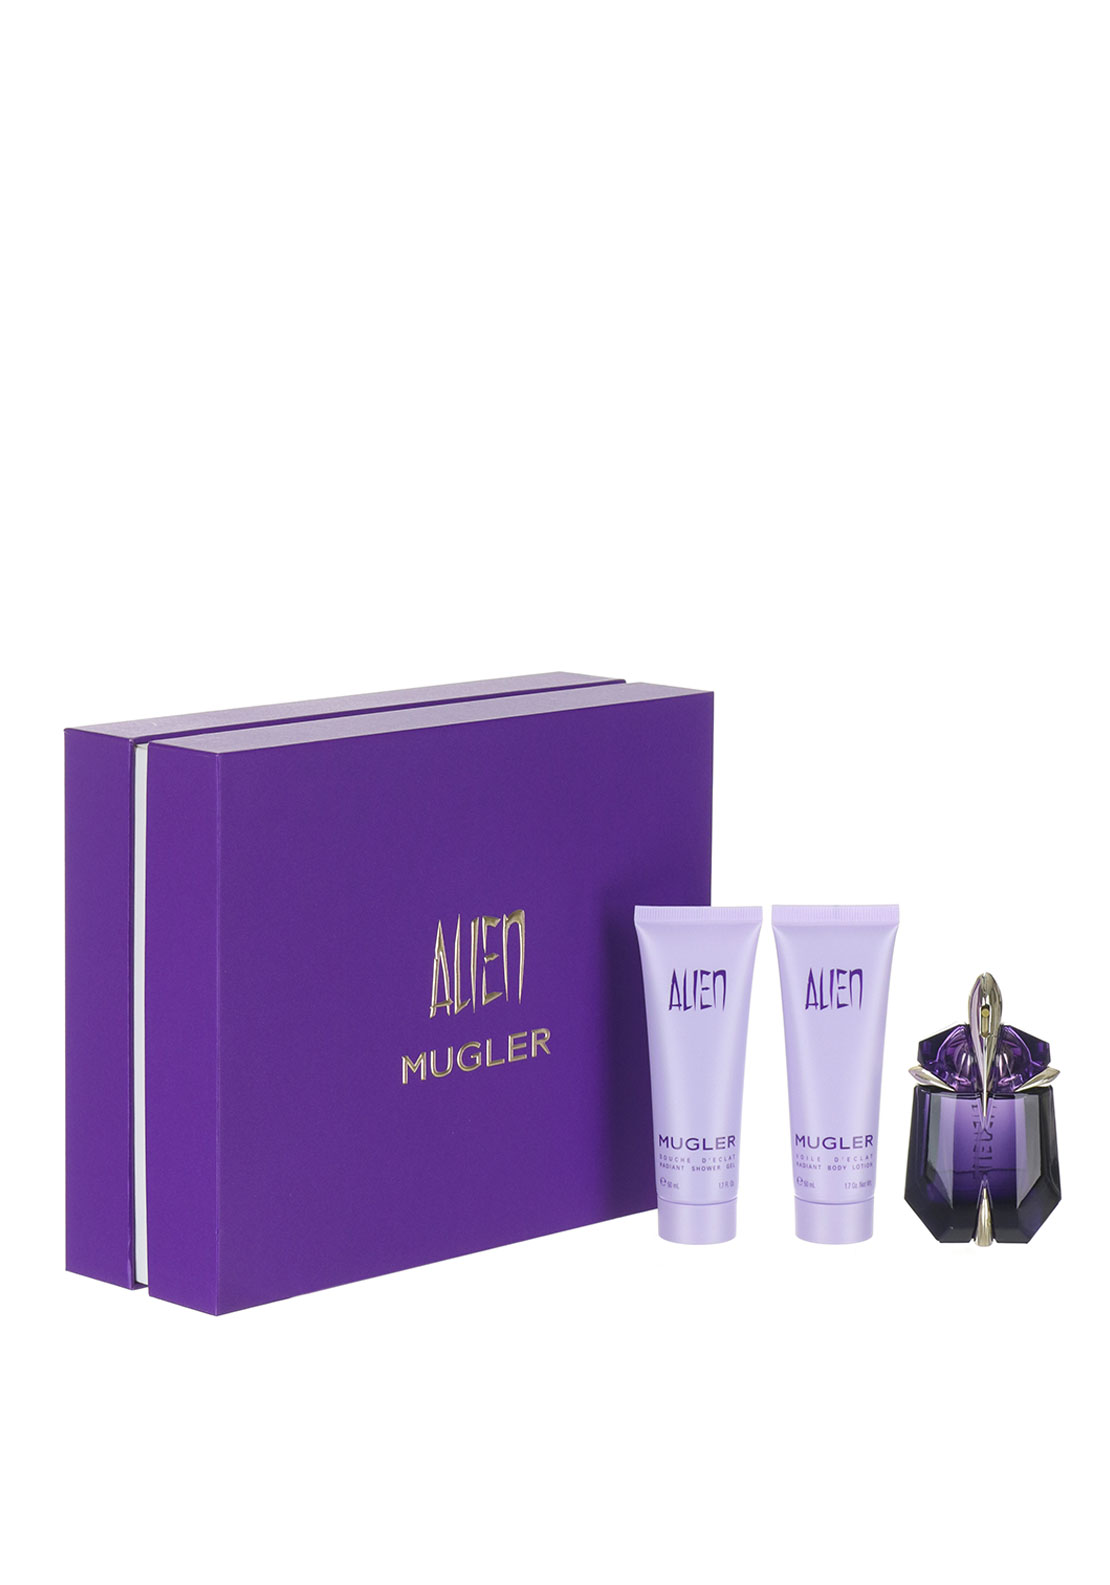 Thierry Mugler Alien Perfume Giftset for her